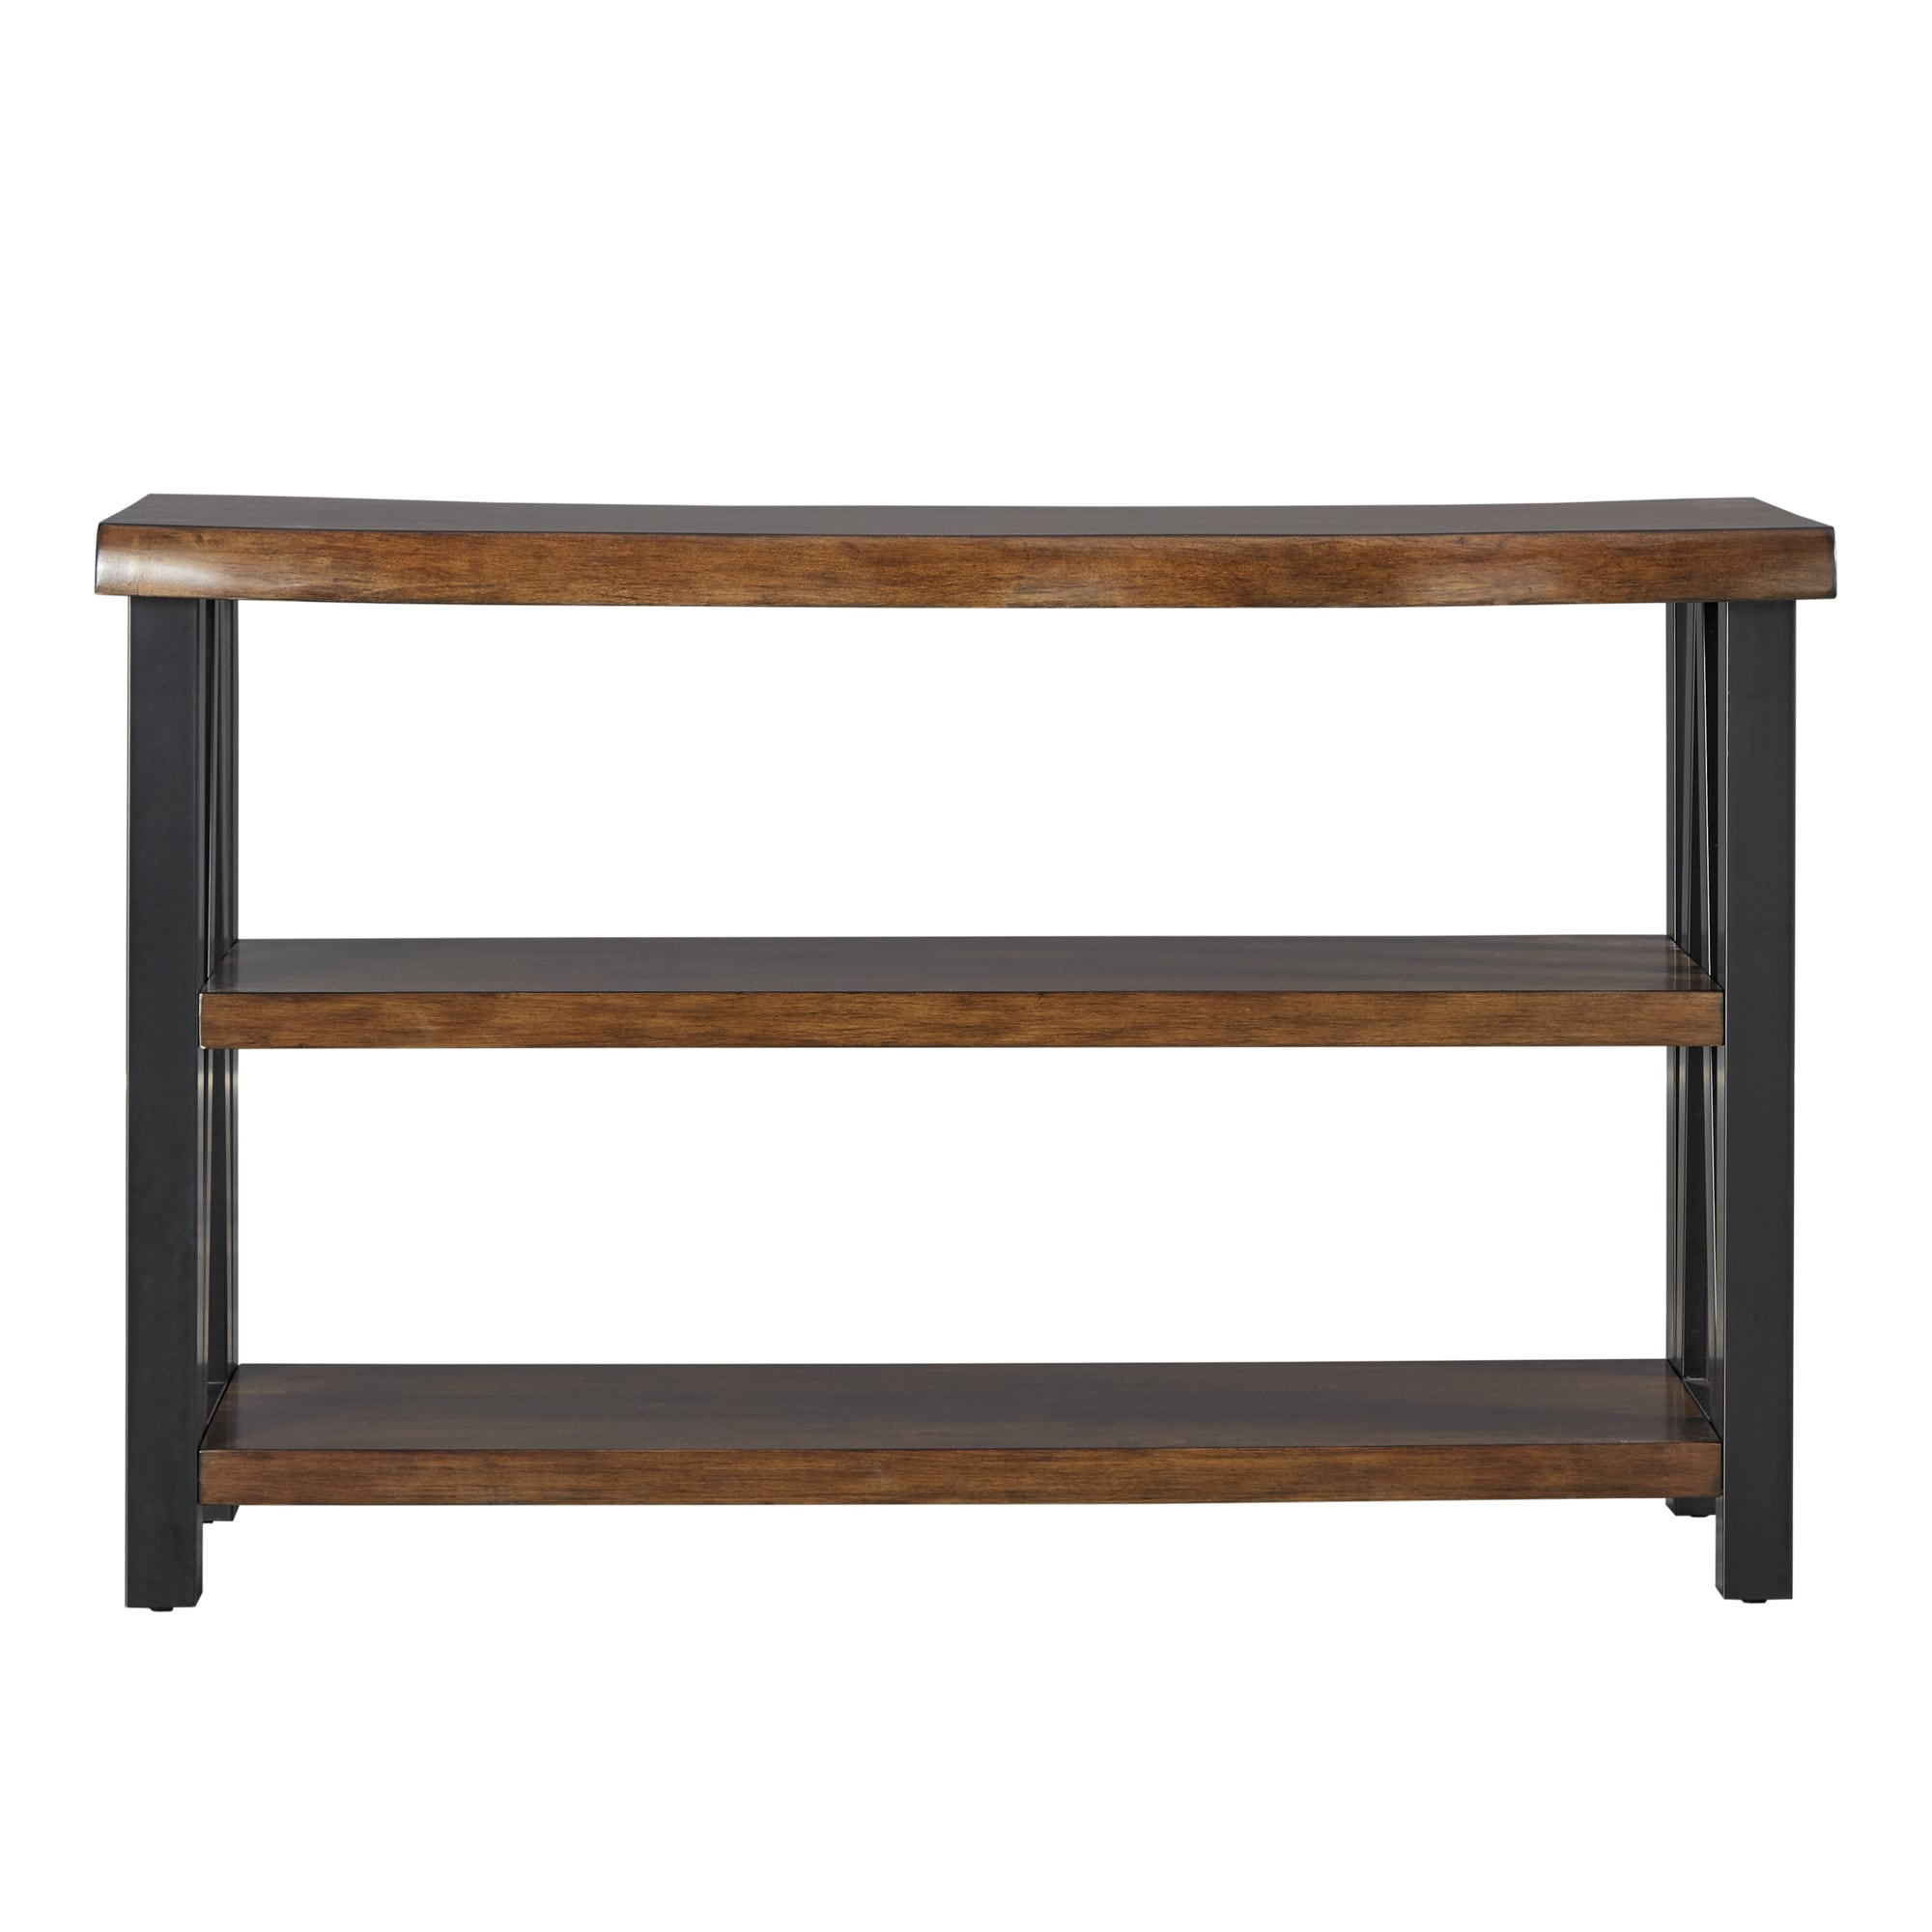 Console Table For Entryway Narrow 3 Tier Storage Hallway Sofa Accent Table Wood Ebay